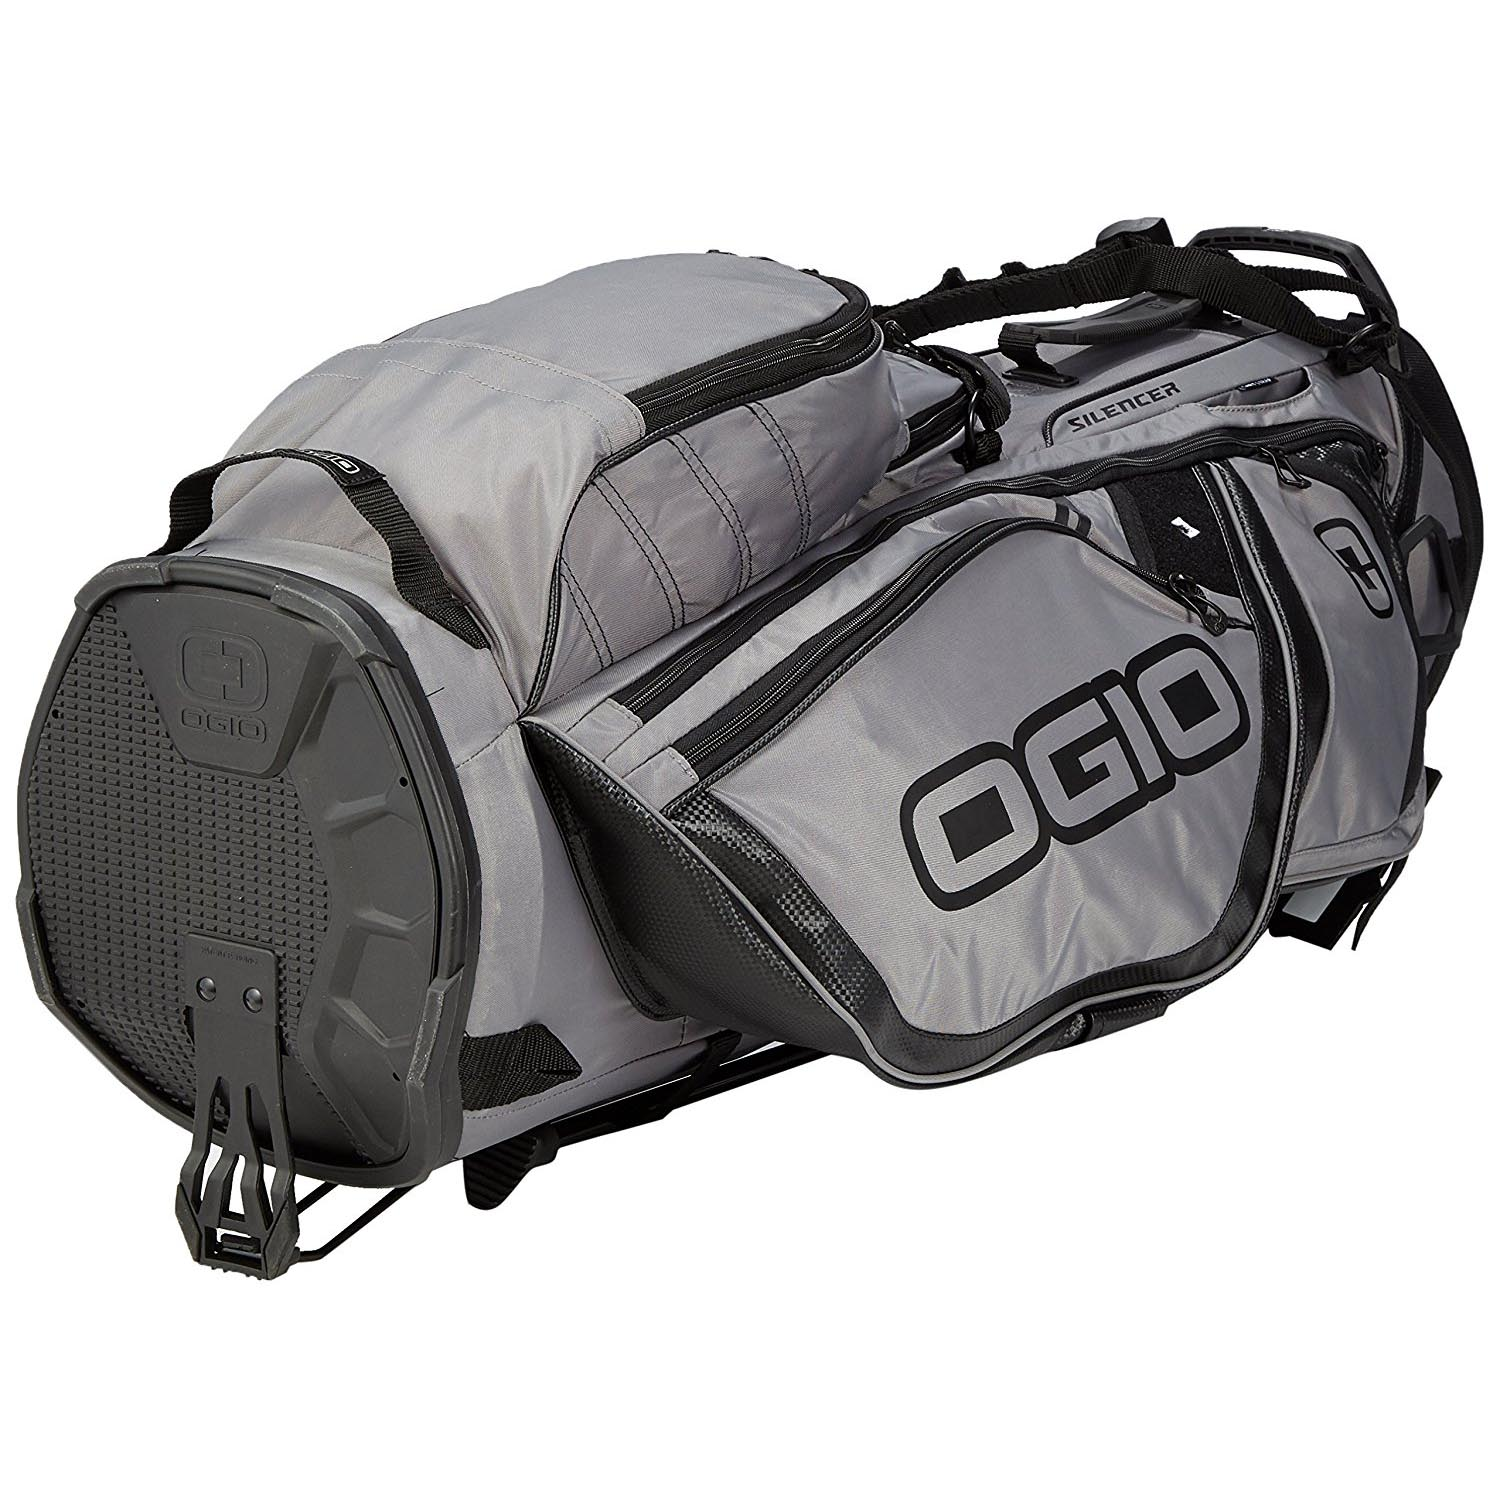 Ogio 2017 Silencer Stand Protective Amp Quiet 14 Way Top Men